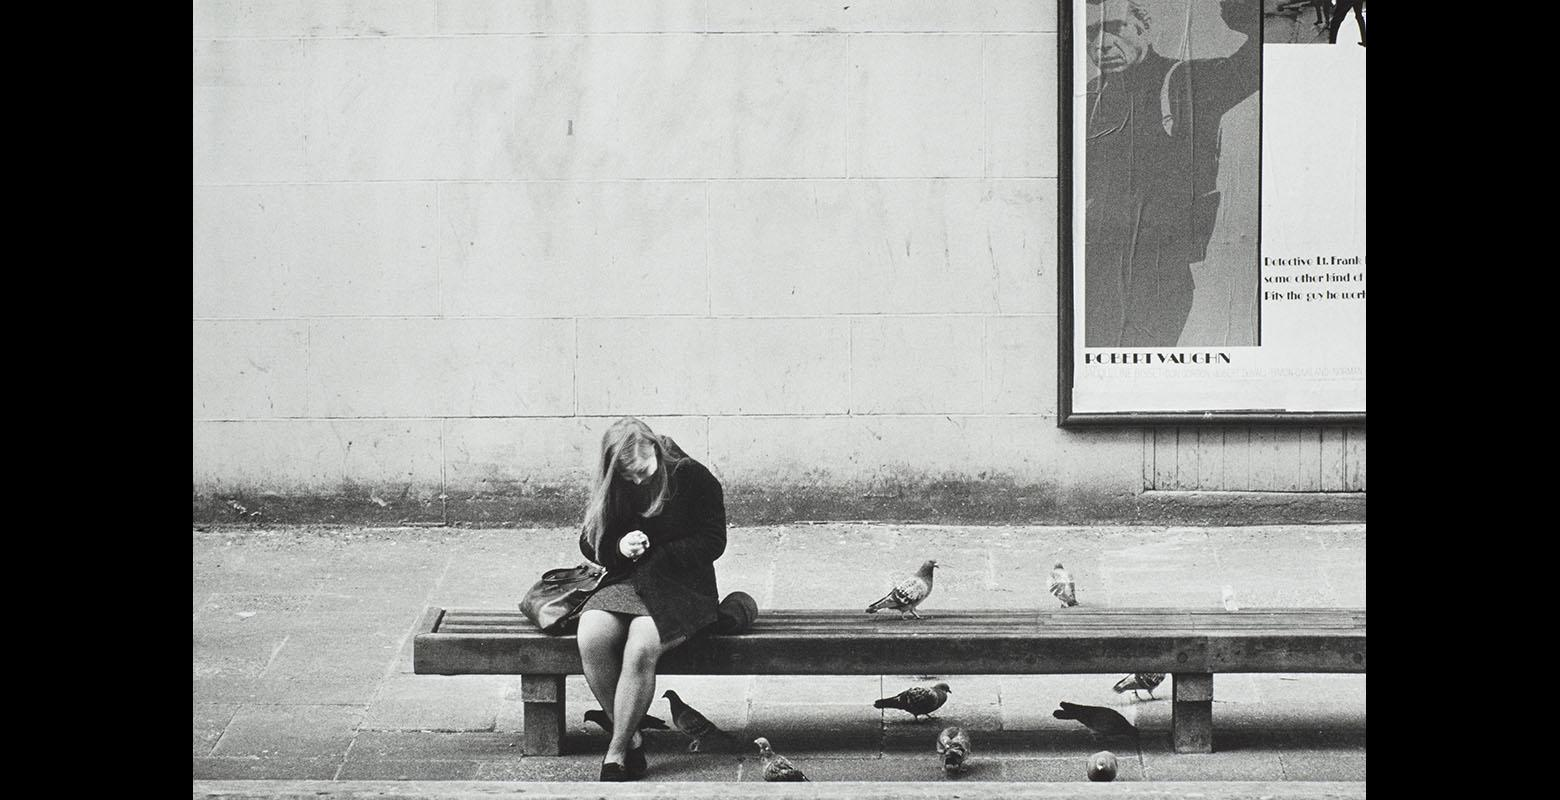 Woman sits on a bench surrounded by pigeons. Behind her on a wall is a poster for a film